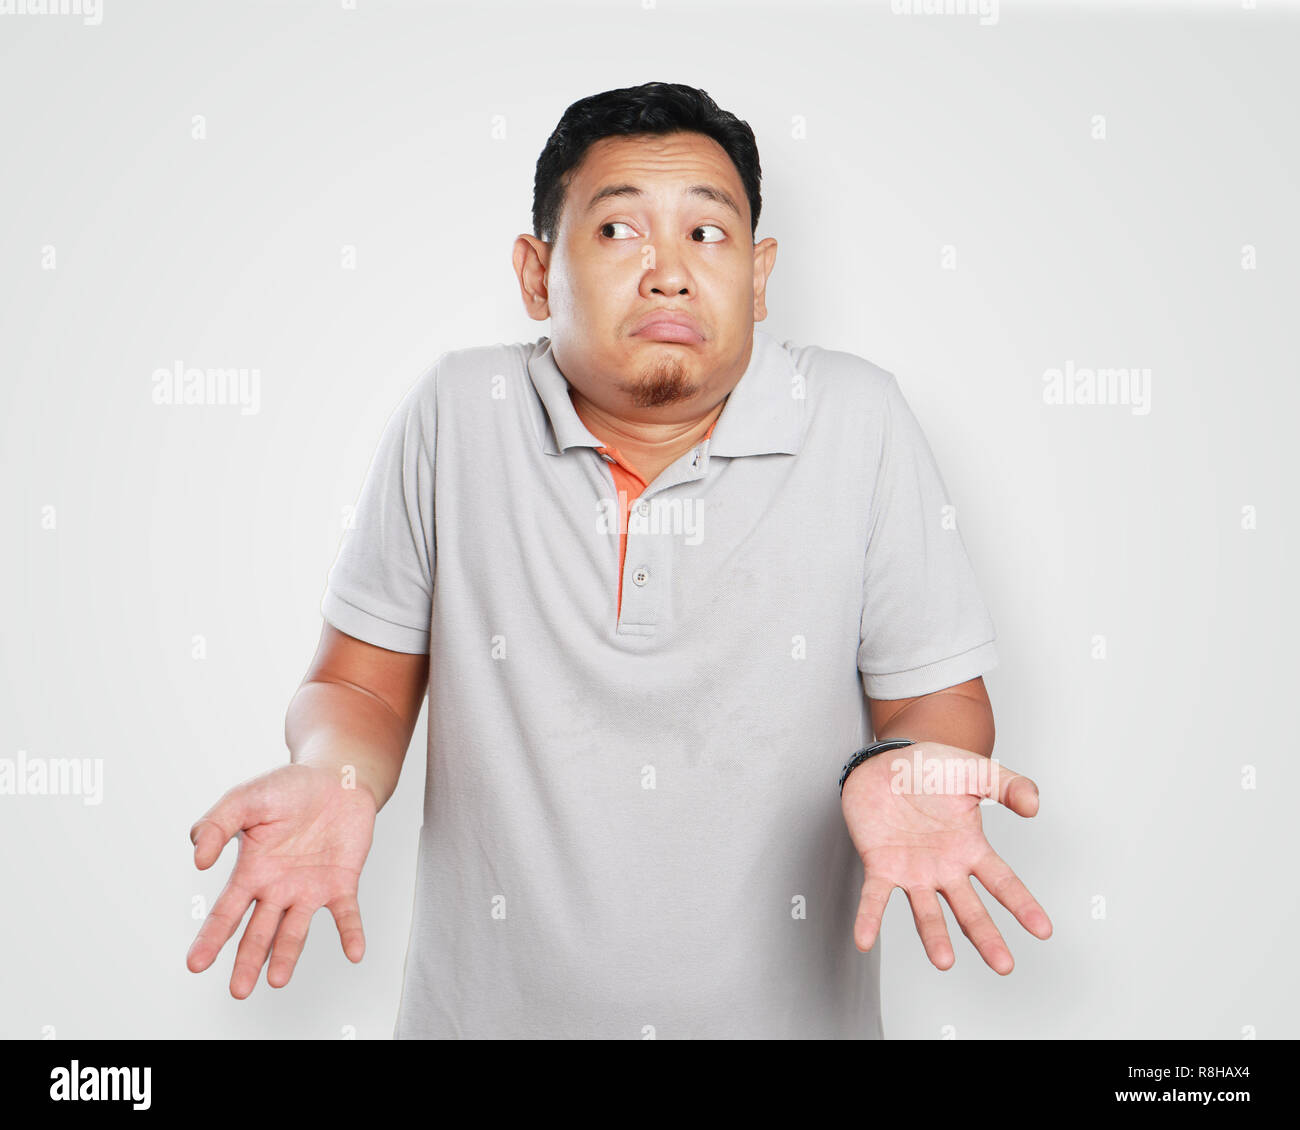 Photo image portrait of a cute young Asian man showing I don't know gesture, shoulder shrug and looking to the side - Stock Image